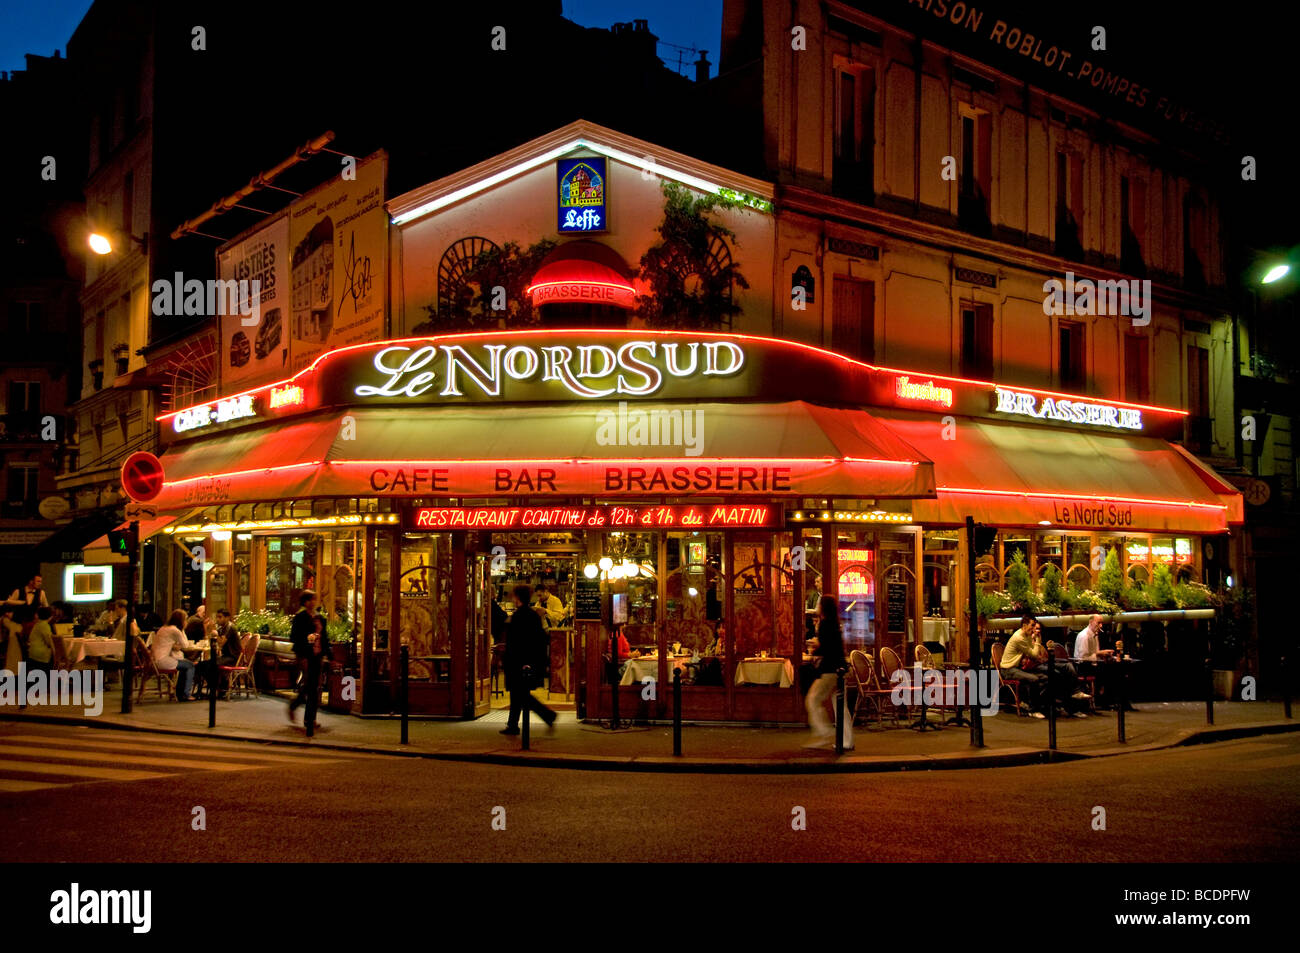 Le nord sud paris france french restaurant cafe bar pub for Restaurant cuisine francaise paris